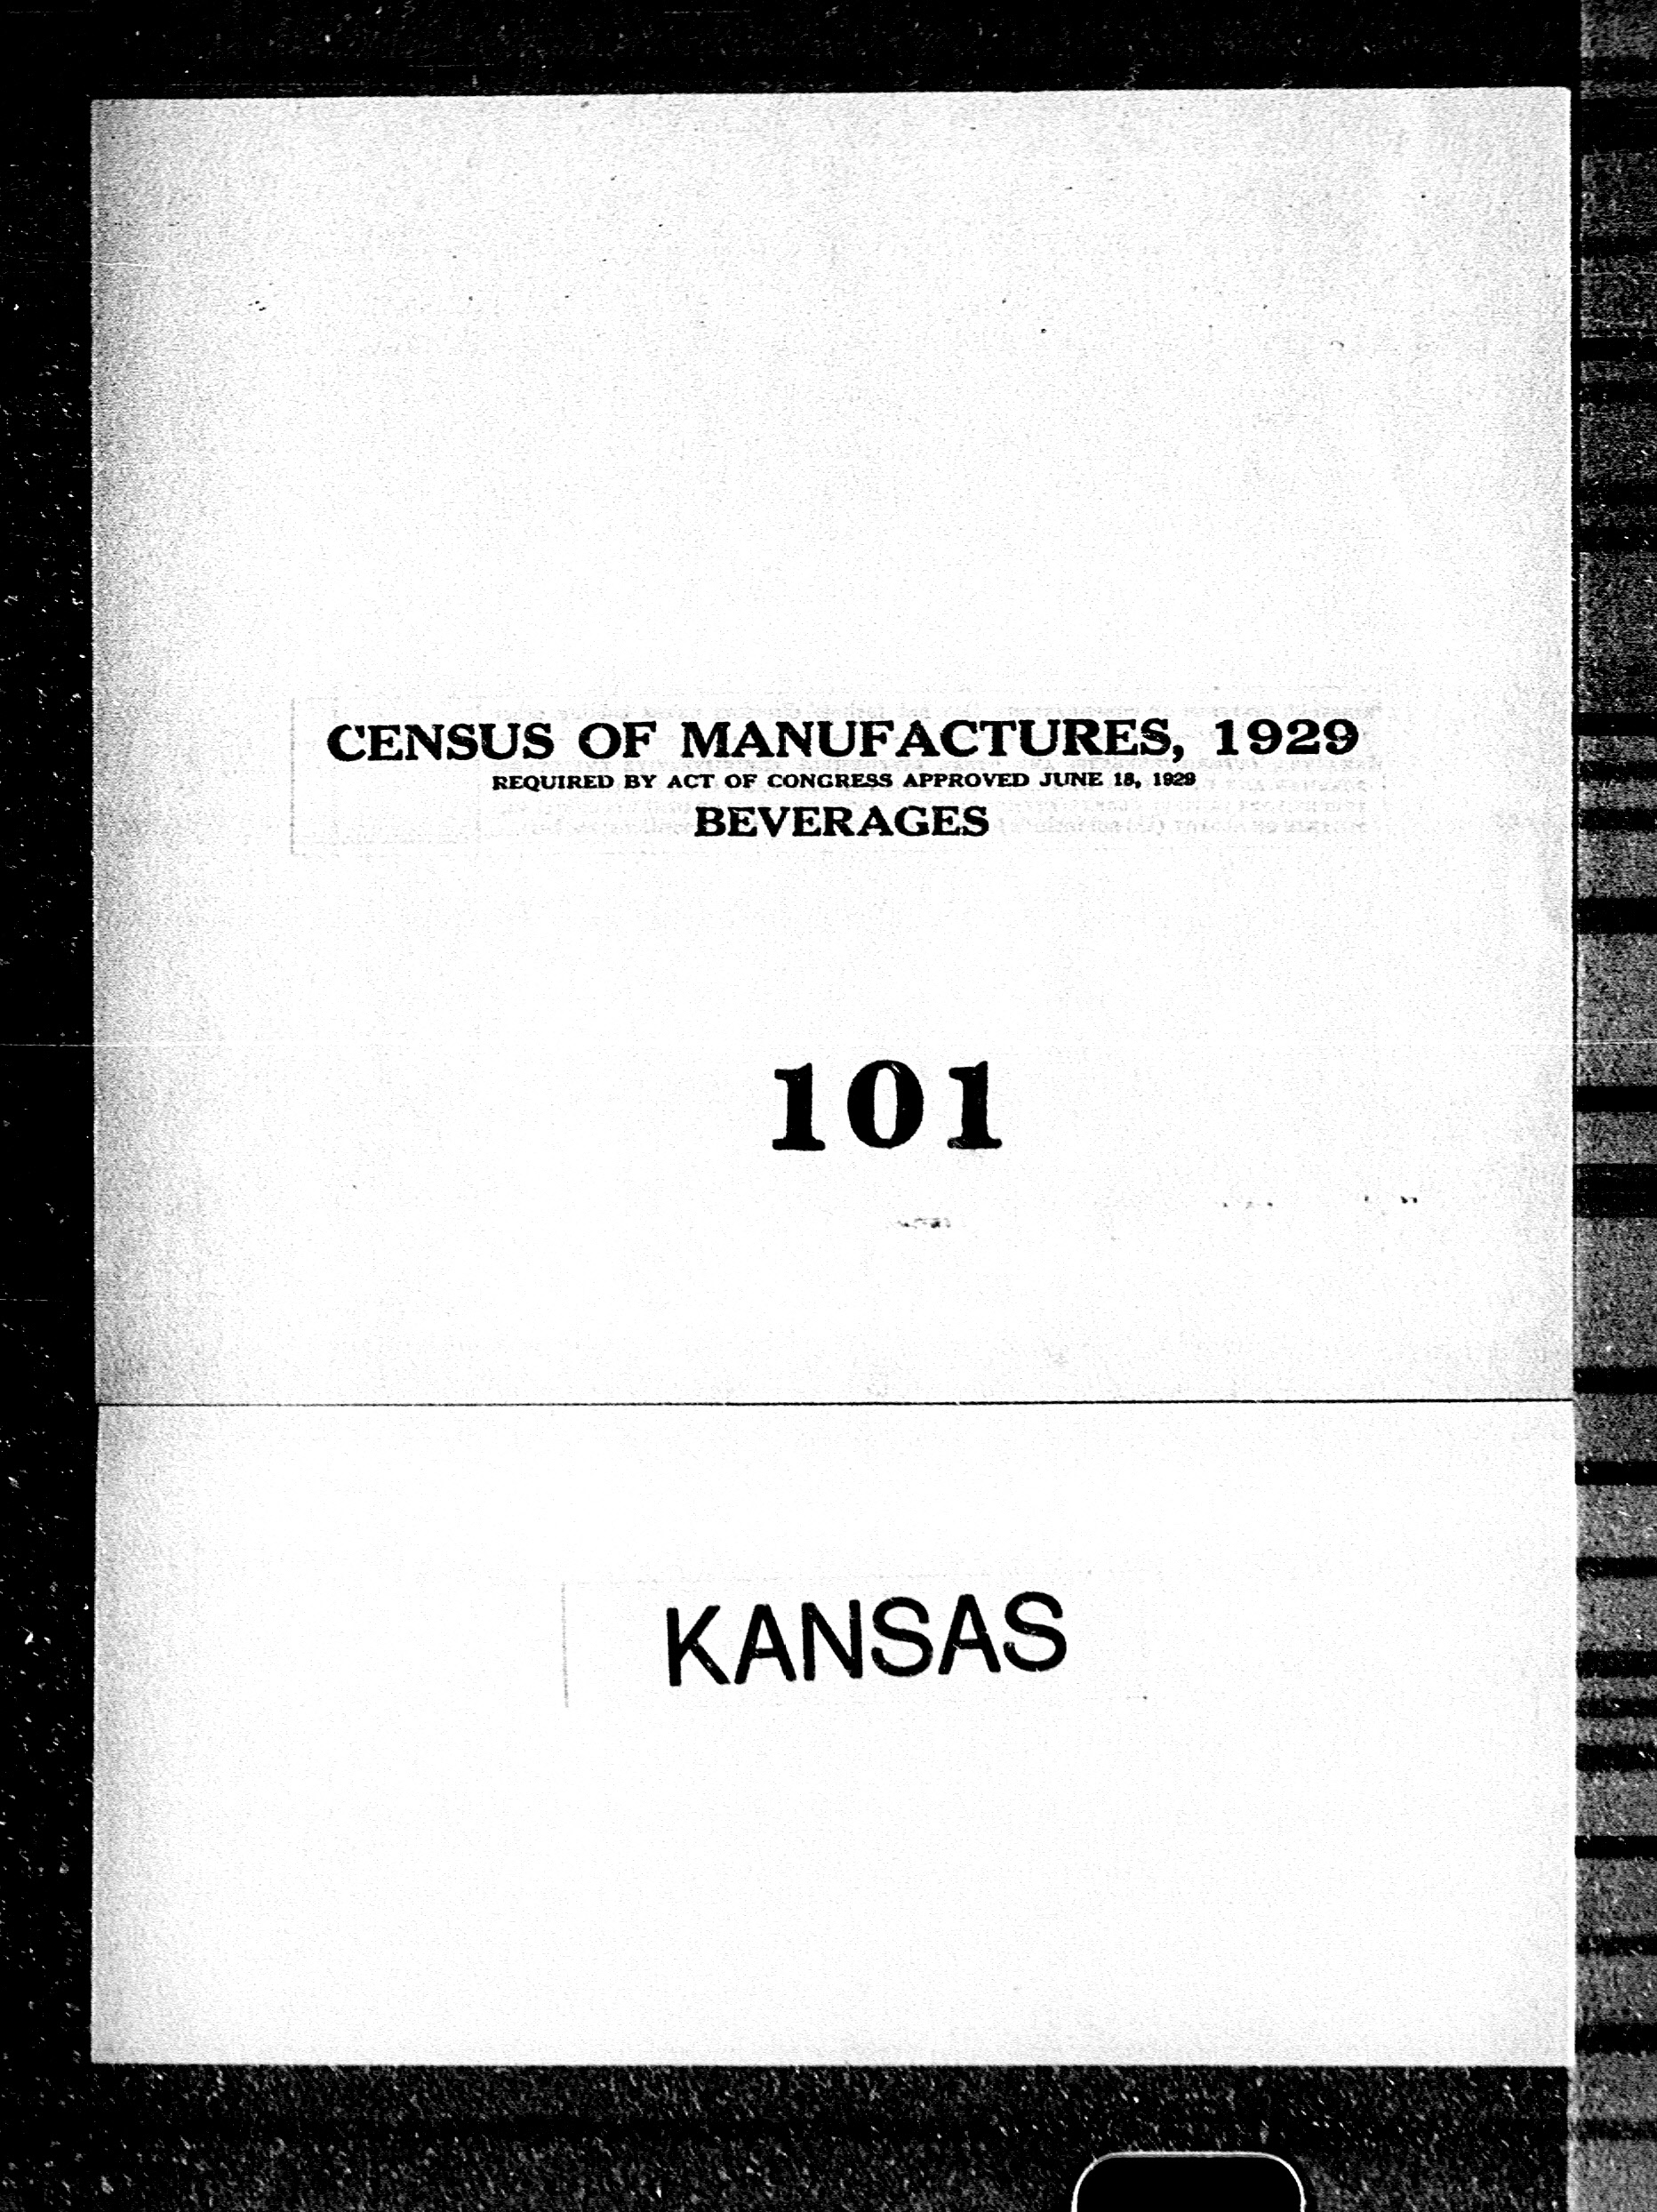 Kansas: Industry No. 101 - Beverages